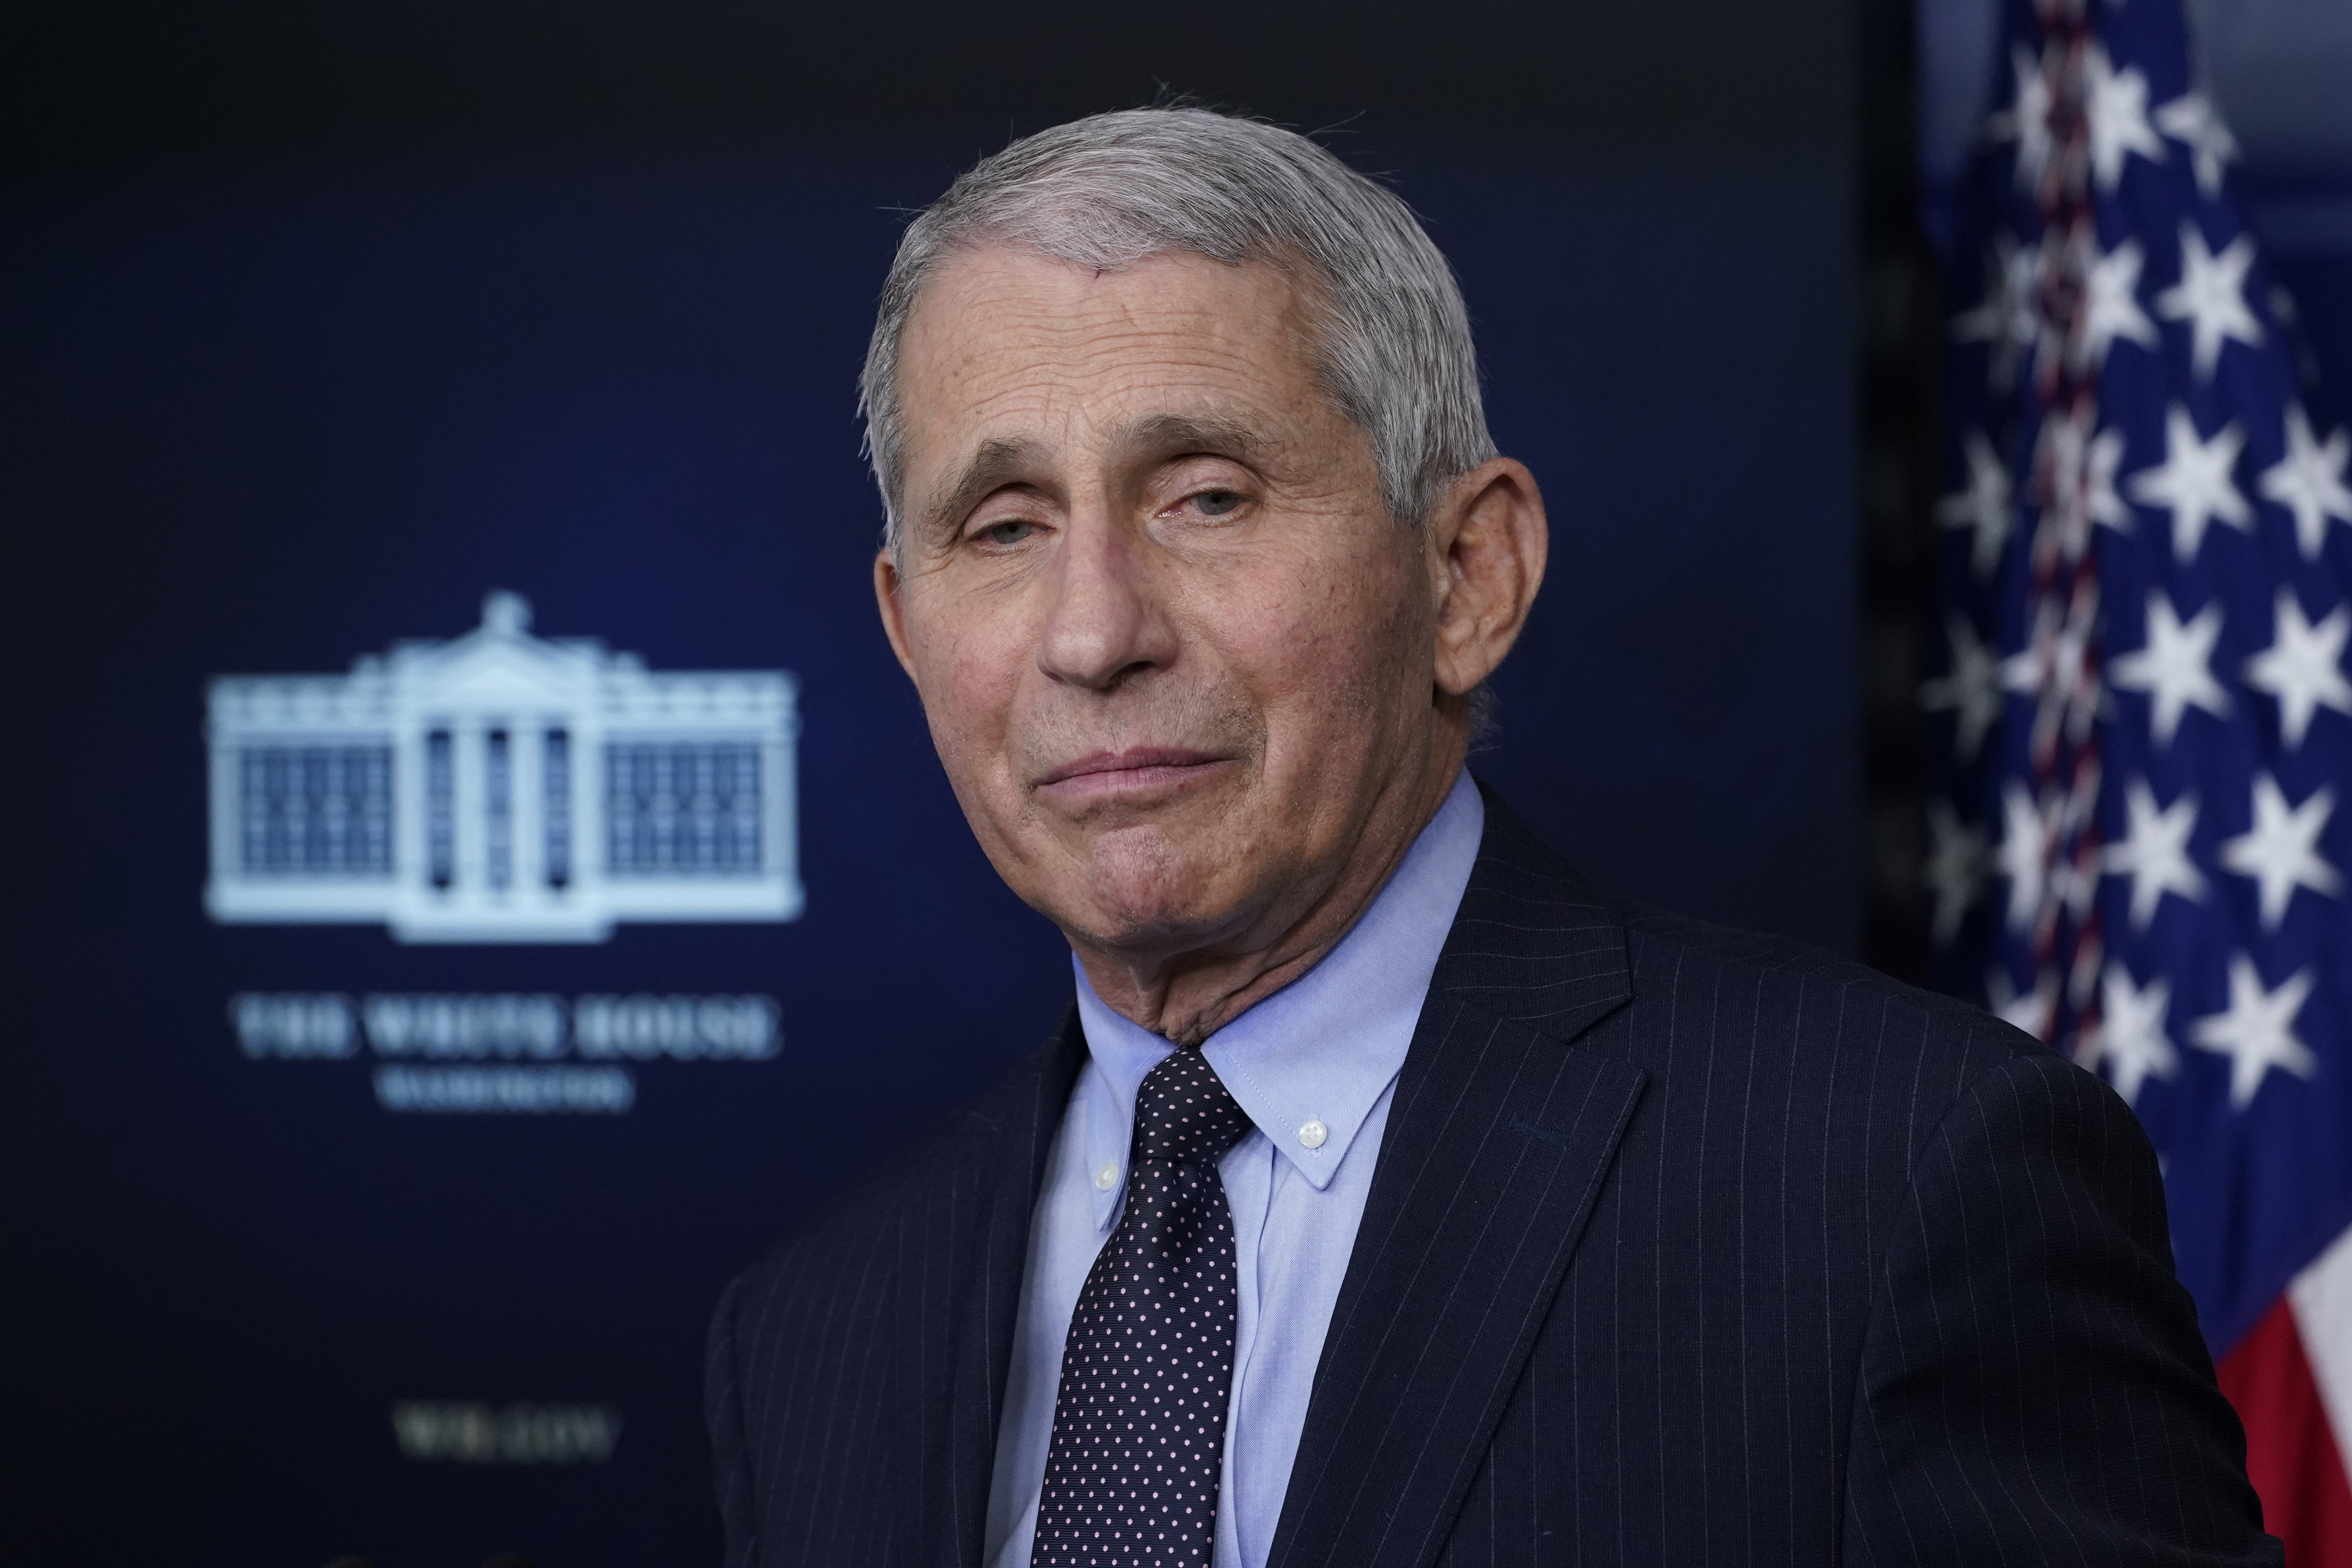 Dr. Anthony Fauci, director of the National Institute of Allergy and Infectious Diseases, listens as he speaks with reporters in the James Brady Press Briefing Room at the White House, Thursday, Jan. 21, 2021, in Washington.